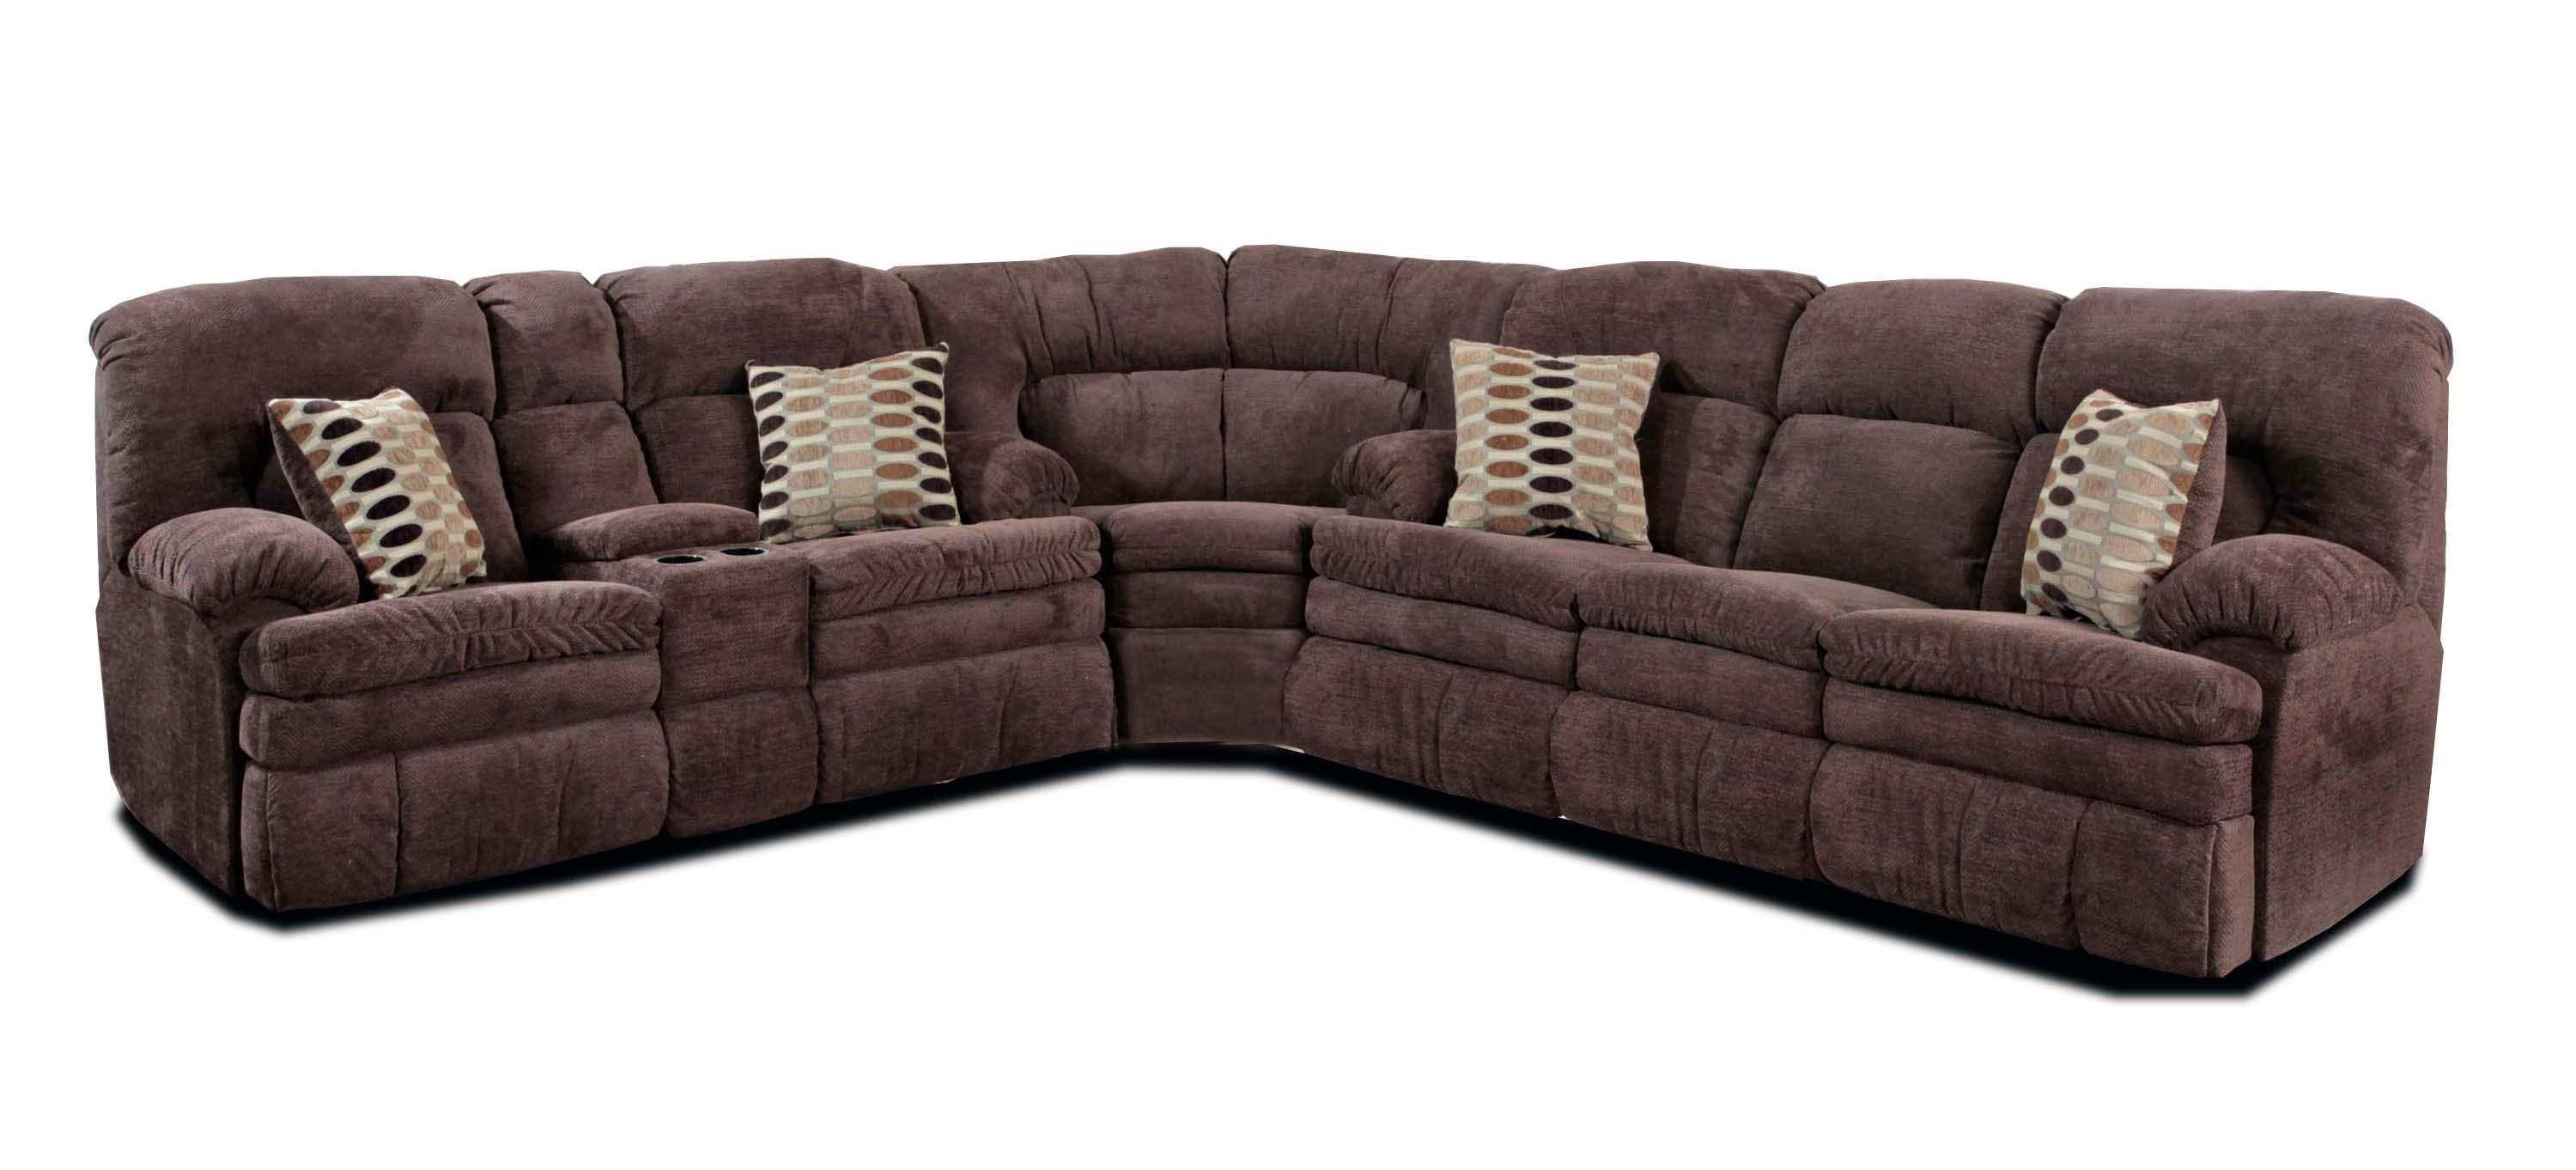 HomeStretch 103 3-Piece Reclining Sectional - Item Number: 103-30+22+00-22